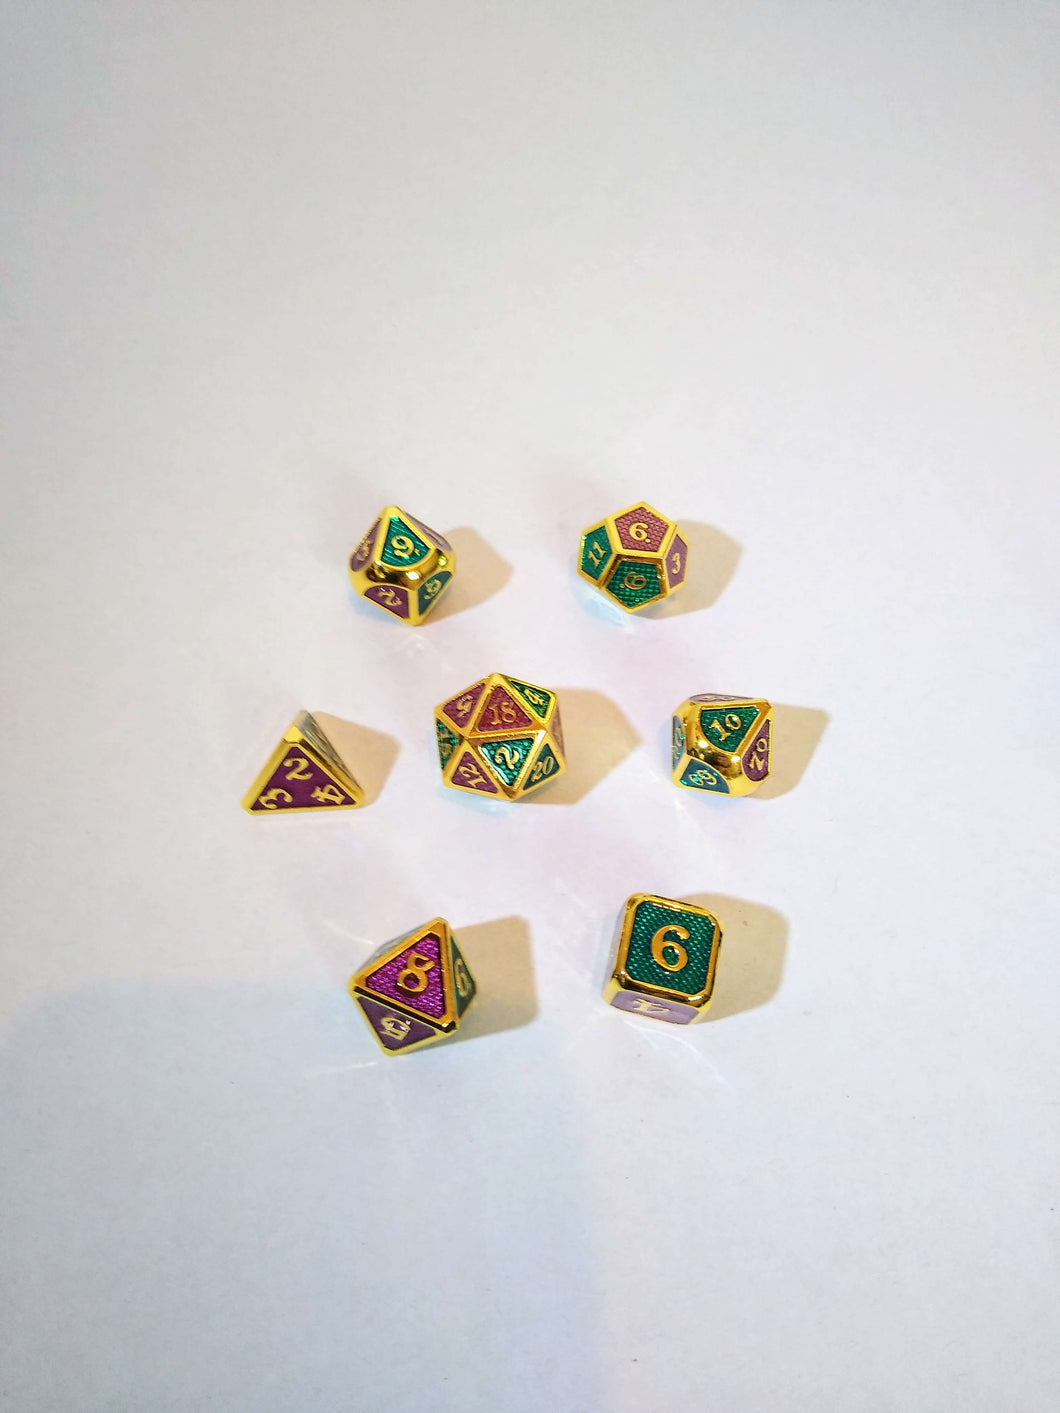 Her Majesty's Jester Dice Set